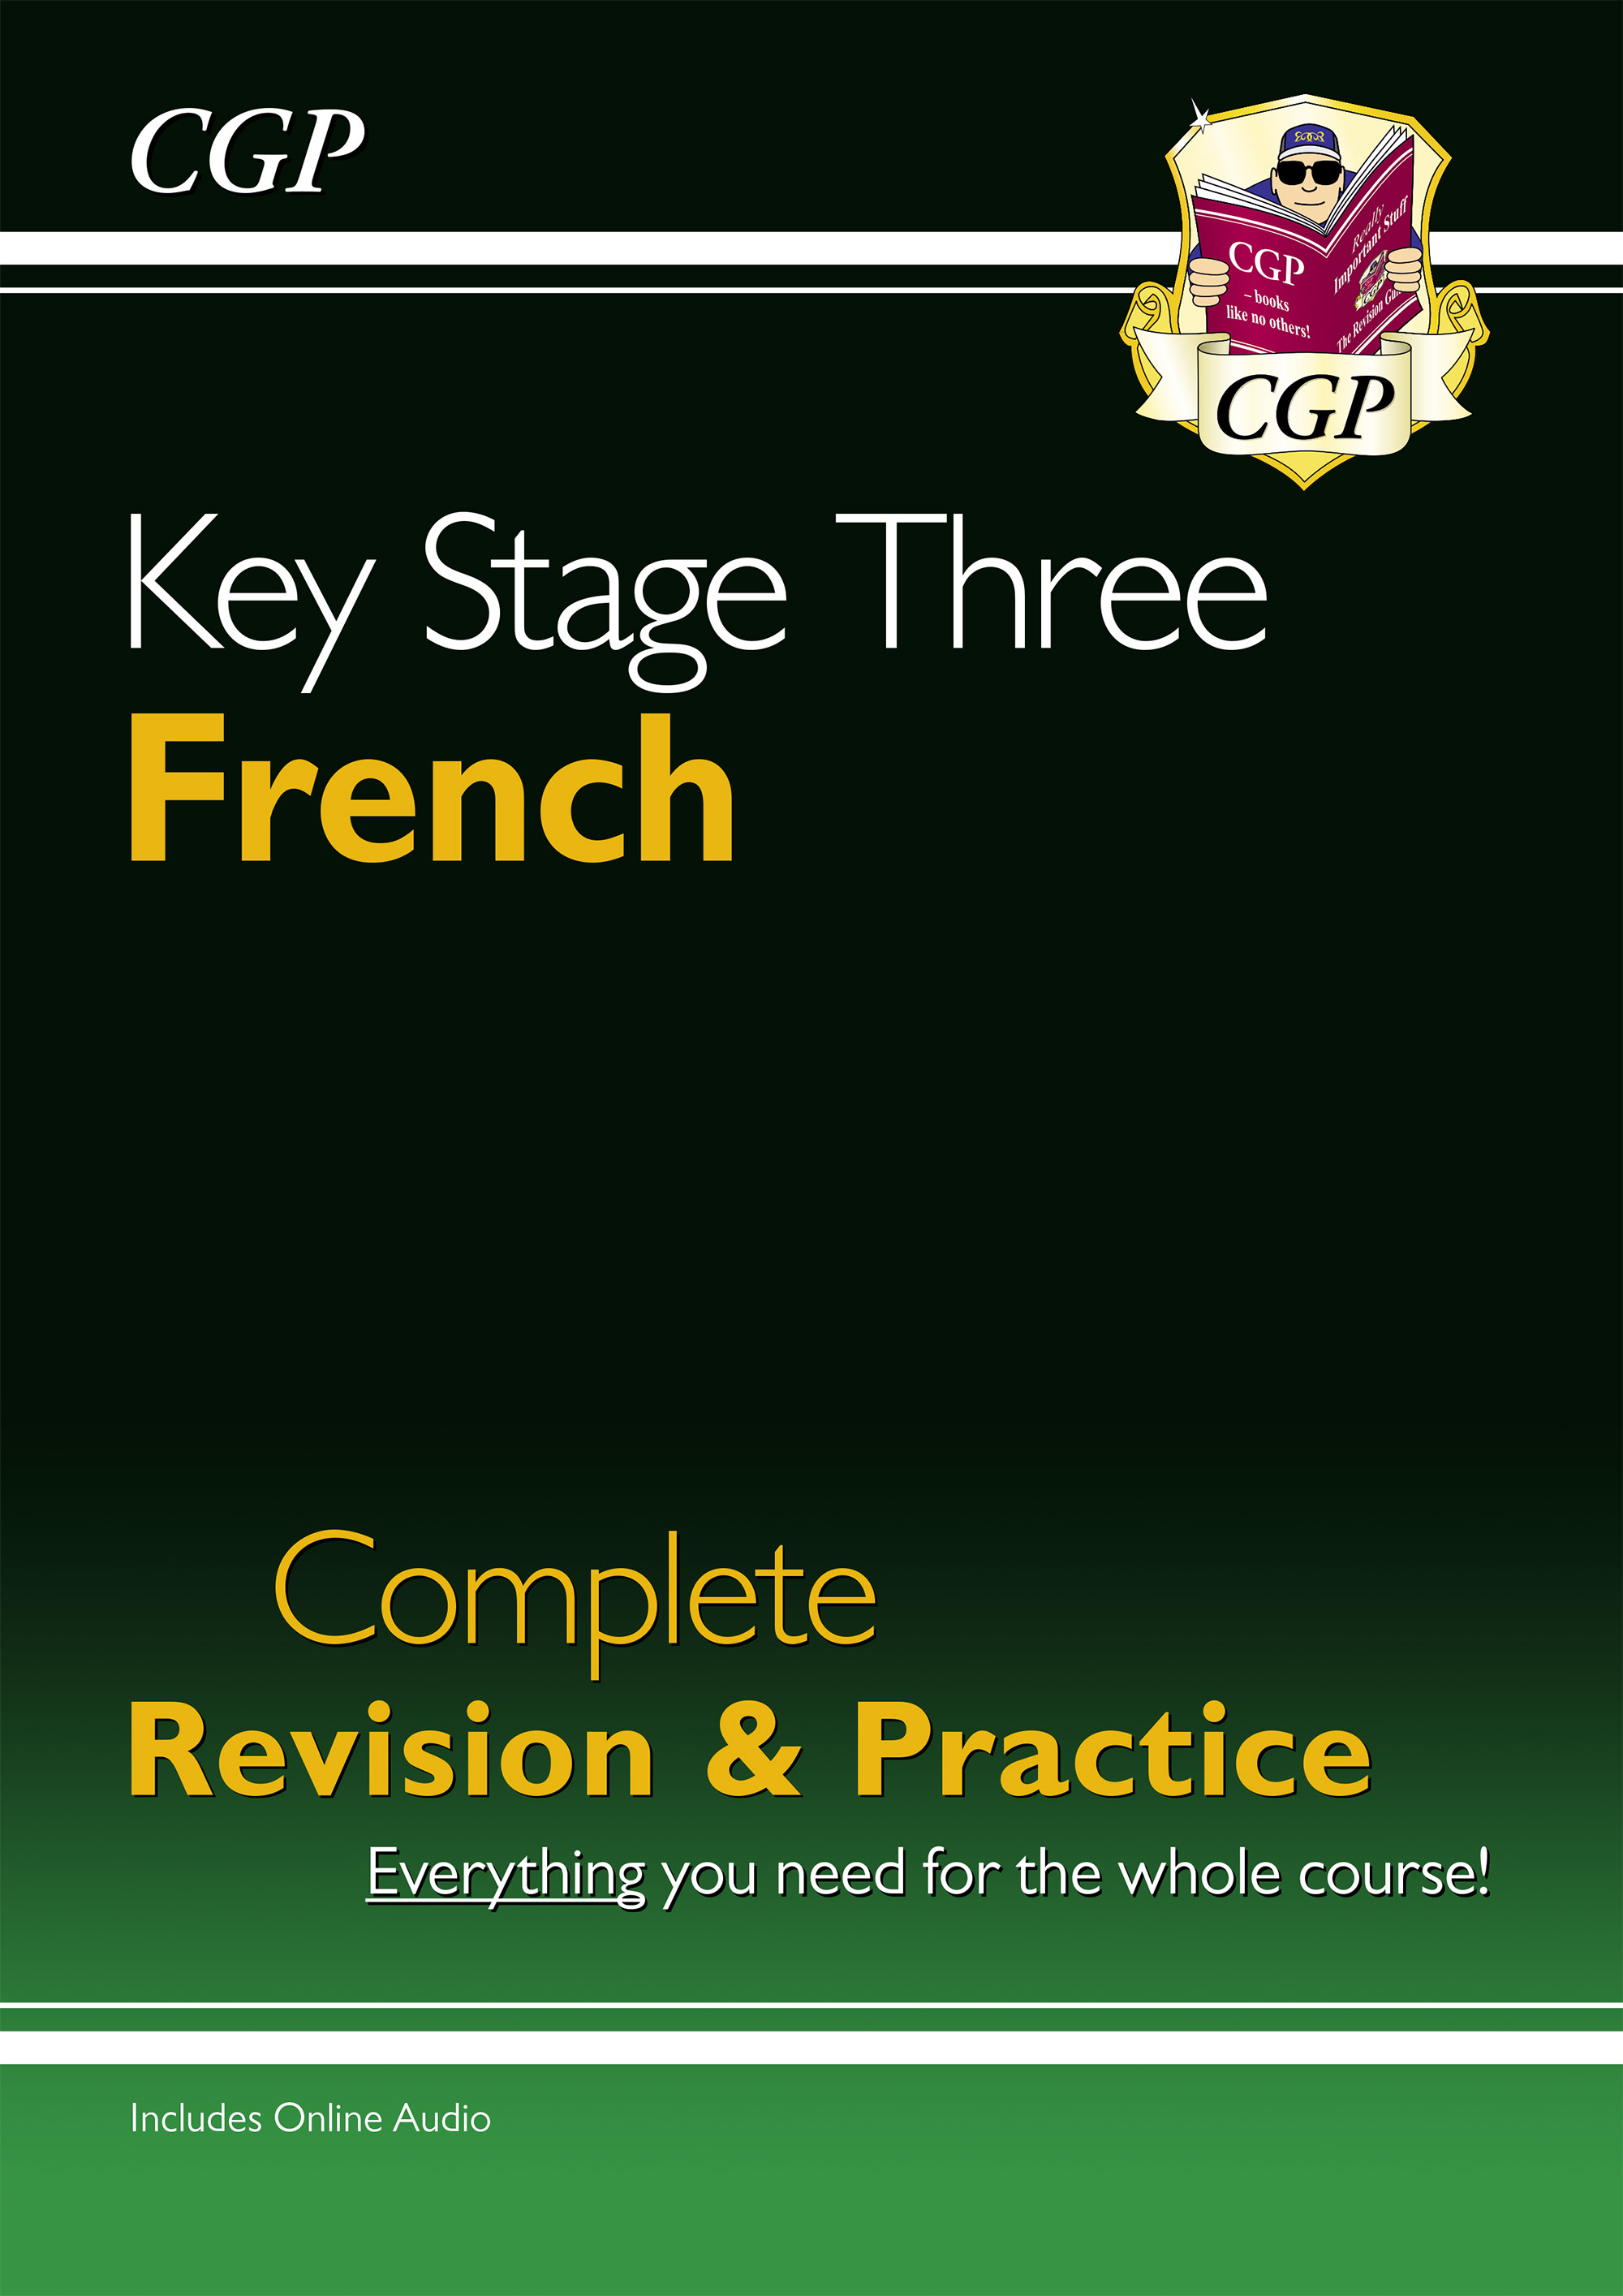 FHS33DK - New KS3 French Complete Revision & Practice with Free Online Audio